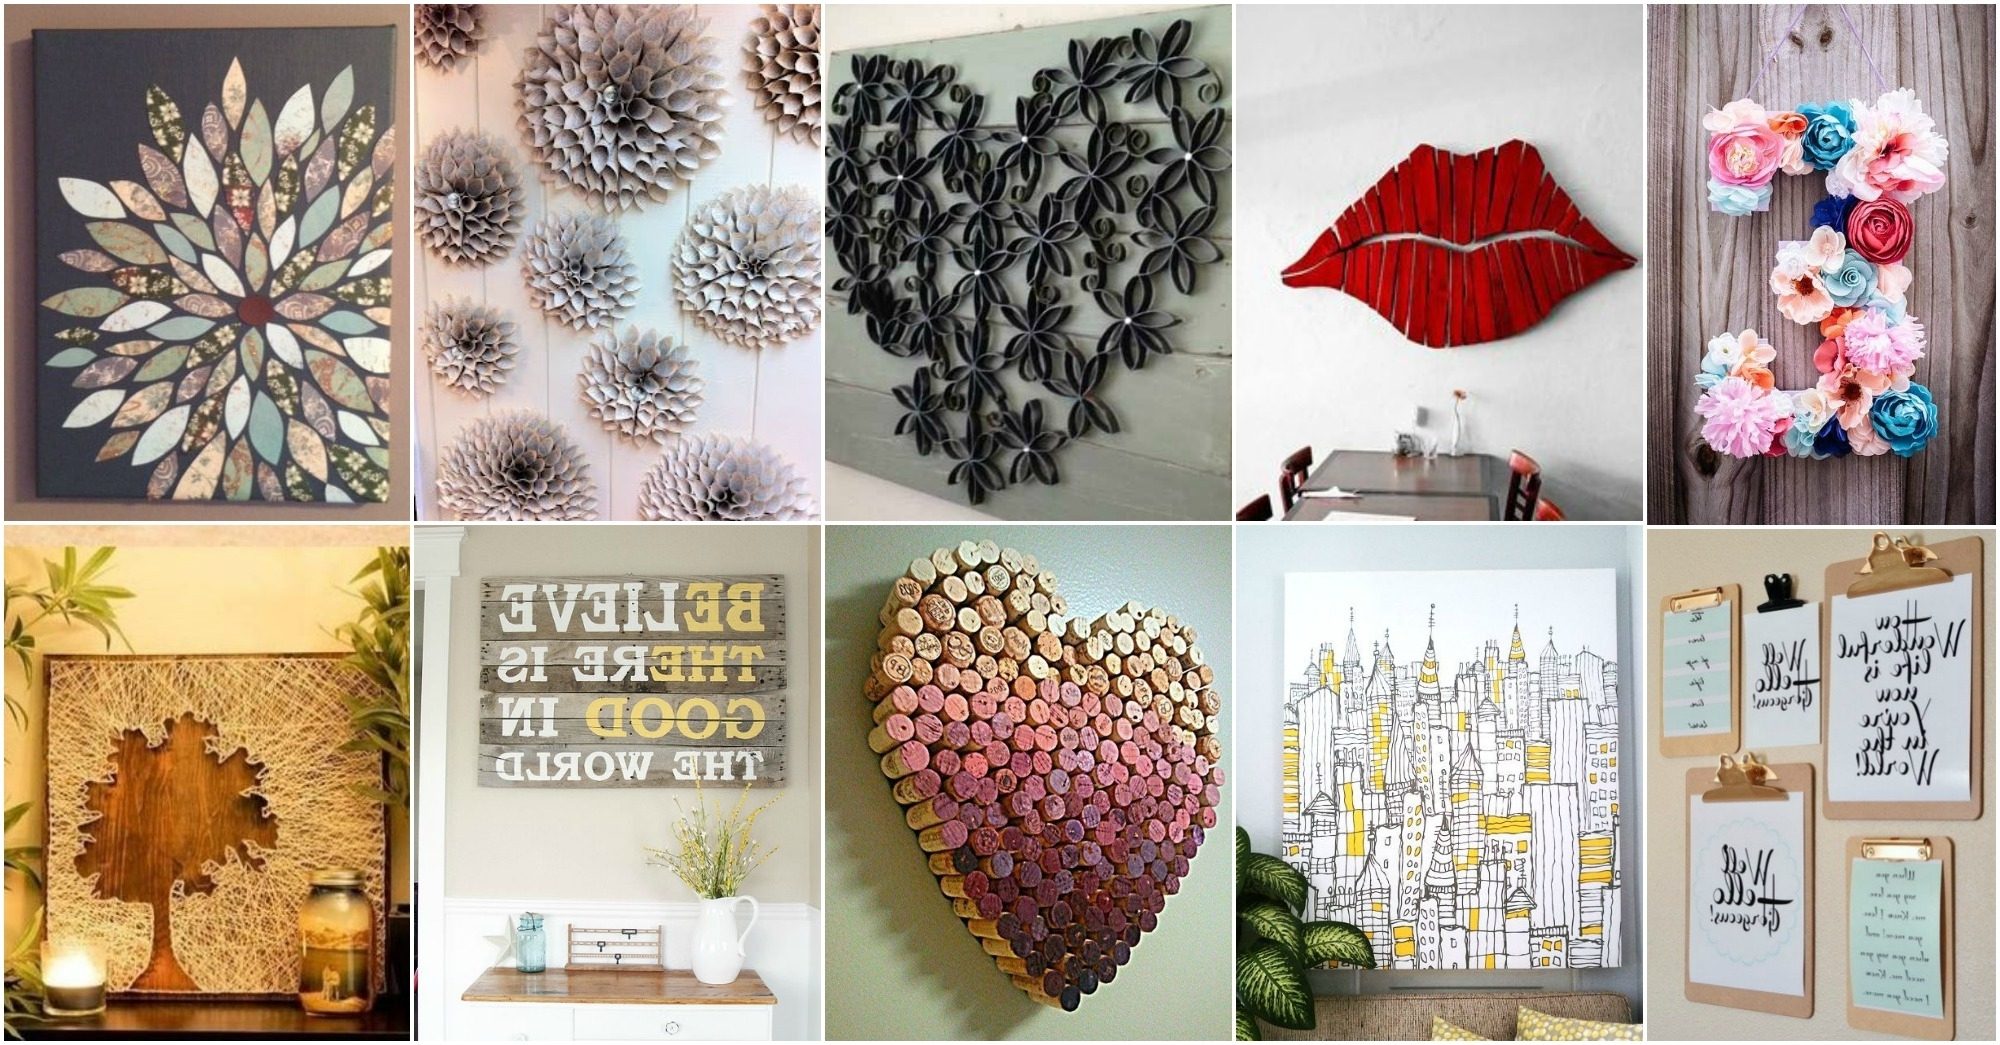 More Amazing Diy Wall Art Ideas In Recent Diy Wall Art (View 10 of 15)